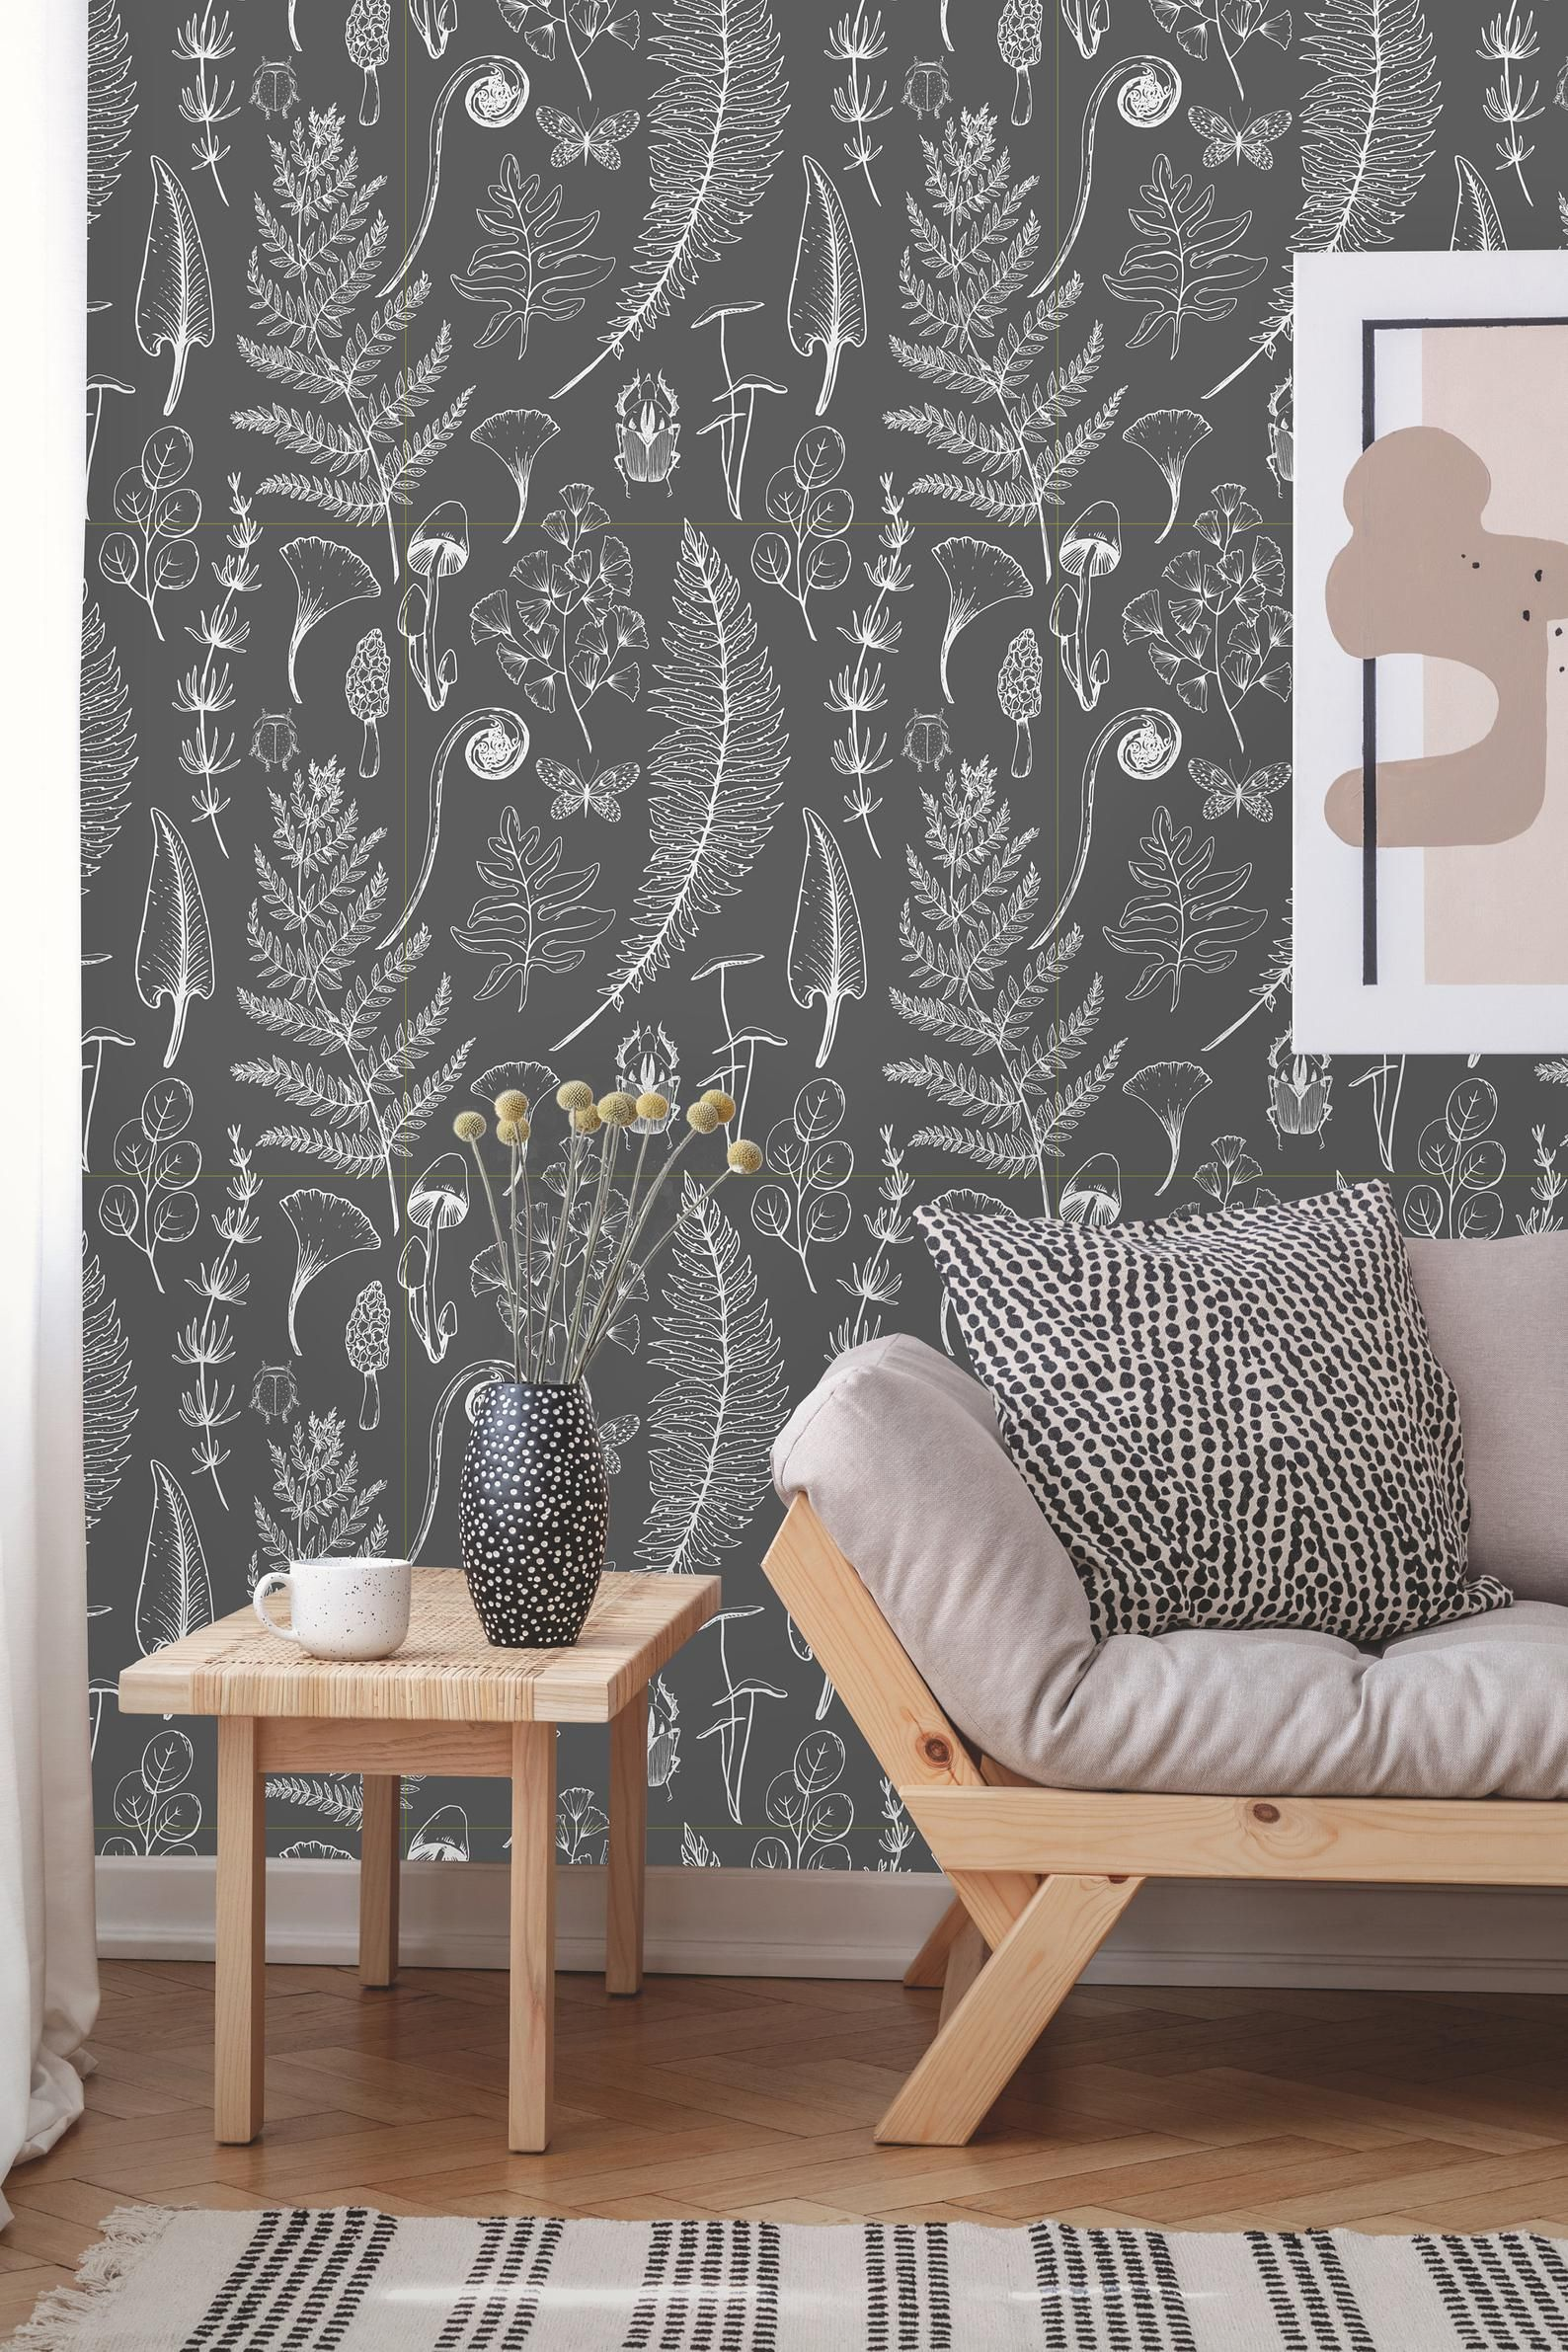 Removable Wallpaper Peel and Stick Floral Wallpaper